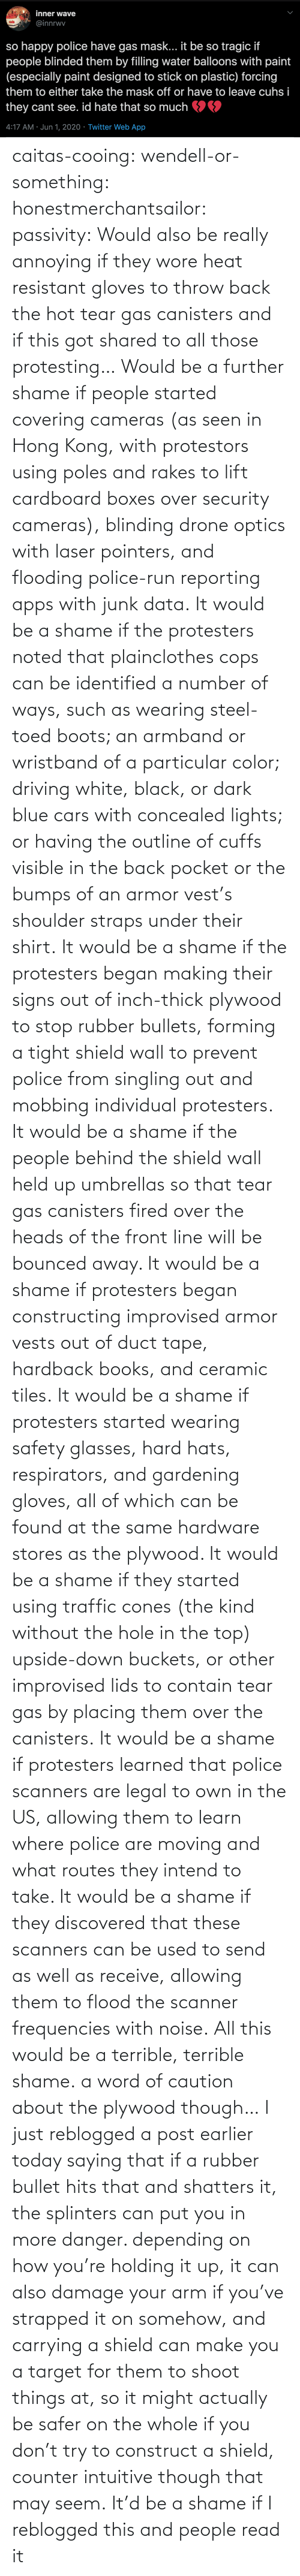 things: caitas-cooing:  wendell-or-something: honestmerchantsailor:  passivity: Would also be really annoying if they wore heat resistant gloves to throw back the hot tear gas canisters and if this got shared to all those protesting… Would be a further shame if people started covering cameras (as seen in Hong Kong, with protestors using poles and rakes to lift cardboard boxes over security cameras), blinding drone optics with laser pointers, and flooding police-run reporting apps with junk data. It would be a shame if the protesters noted that plainclothes cops can be identified a number of ways, such as wearing steel-toed boots; an armband or wristband of a particular color; driving white, black, or dark blue cars with concealed lights; or having the outline of cuffs visible in the back pocket or the bumps of an armor vest's shoulder straps under their shirt. It would be a shame if the protesters began making their signs out of inch-thick plywood to stop rubber bullets, forming a tight shield wall to prevent police from singling out and mobbing individual protesters. It would be a shame if the people behind the shield wall held up umbrellas so that tear gas canisters fired over the heads of the front line will be bounced away. It would be a shame if protesters began constructing improvised armor vests out of duct tape, hardback books, and ceramic tiles. It would be a shame if protesters started wearing safety glasses, hard hats, respirators, and gardening gloves, all of which can be found at the same hardware stores as the plywood. It would be a shame if they started using traffic cones (the kind without the hole in the top) upside-down buckets, or other improvised lids to contain tear gas by placing them over the canisters. It would be a shame if protesters learned that police scanners are legal to own in the US, allowing them to learn where police are moving and what routes they intend to take. It would be a shame if they discovered that these scanners can be used to send as well as receive, allowing them to flood the scanner frequencies with noise. All this would be a terrible, terrible shame.    a word of caution about the plywood though… I just reblogged a post earlier today saying that if a rubber bullet hits that and shatters it, the splinters can put you in more danger. depending on how you're holding it up, it can also damage your arm if you've strapped it on somehow, and carrying a shield can make you a target for them to shoot things at, so it might actually be safer on the whole if you don't try to construct a shield, counter intuitive though that may seem.    It'd be a shame if I reblogged this and people read it